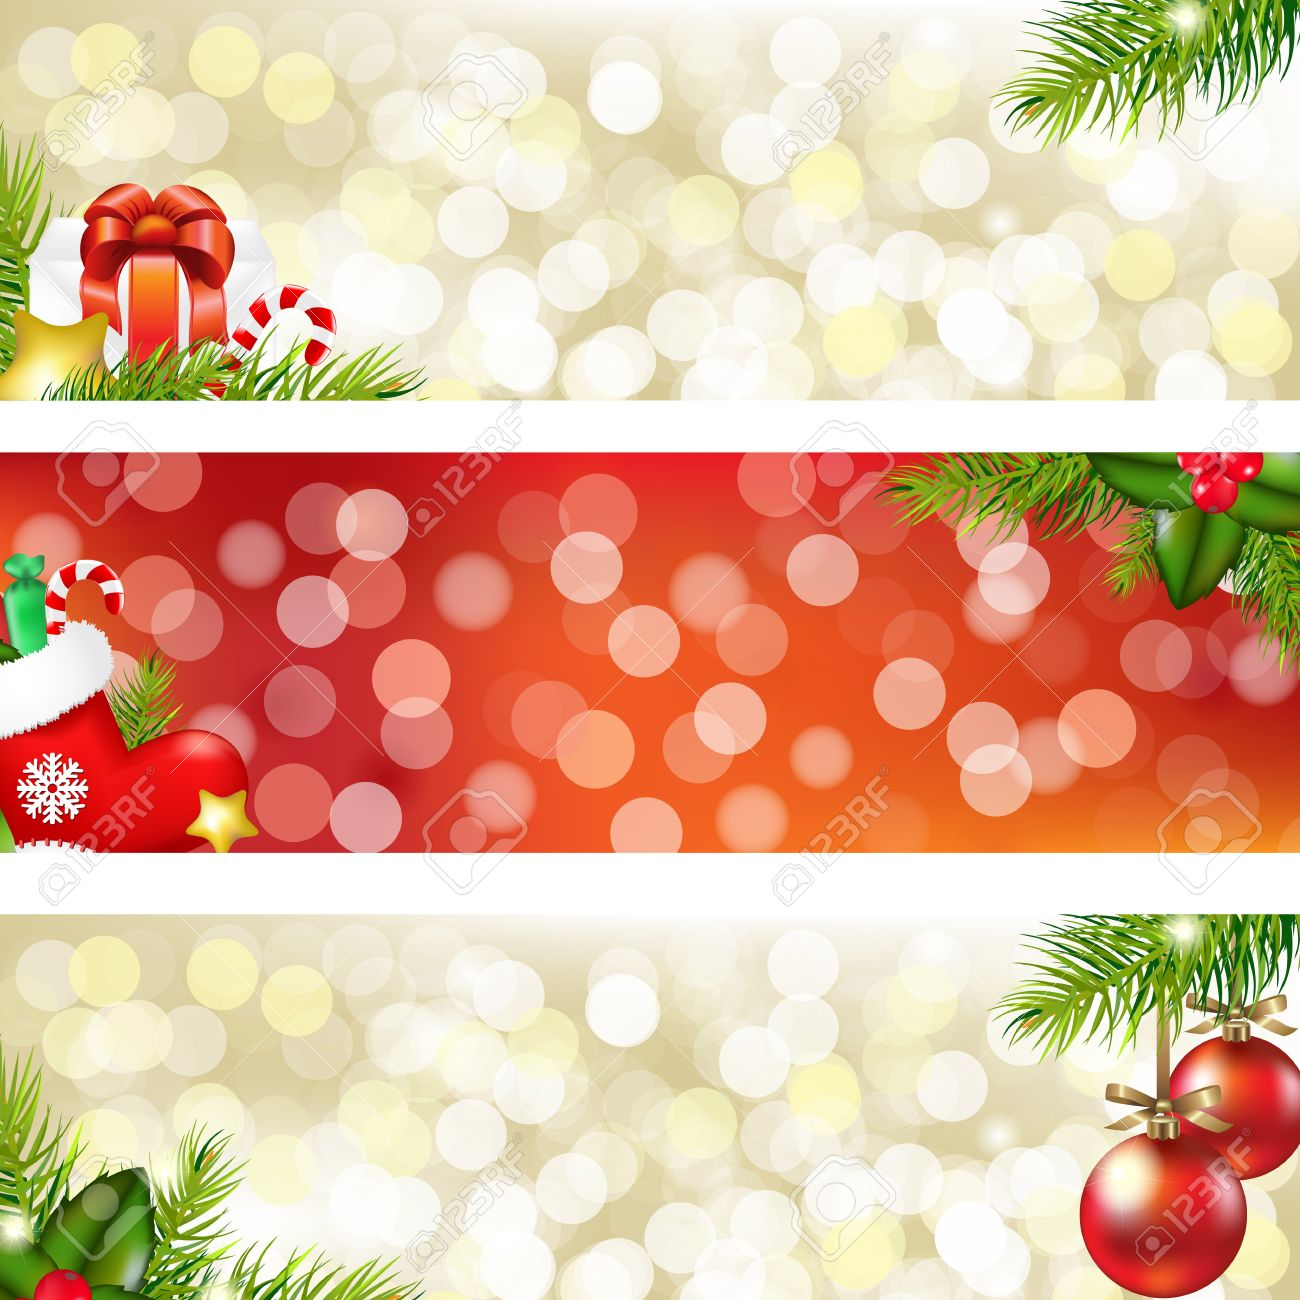 Christmas Banners Part - 18: 3 Christmas Banners, Vector Illustration Stock Vector - 11476591